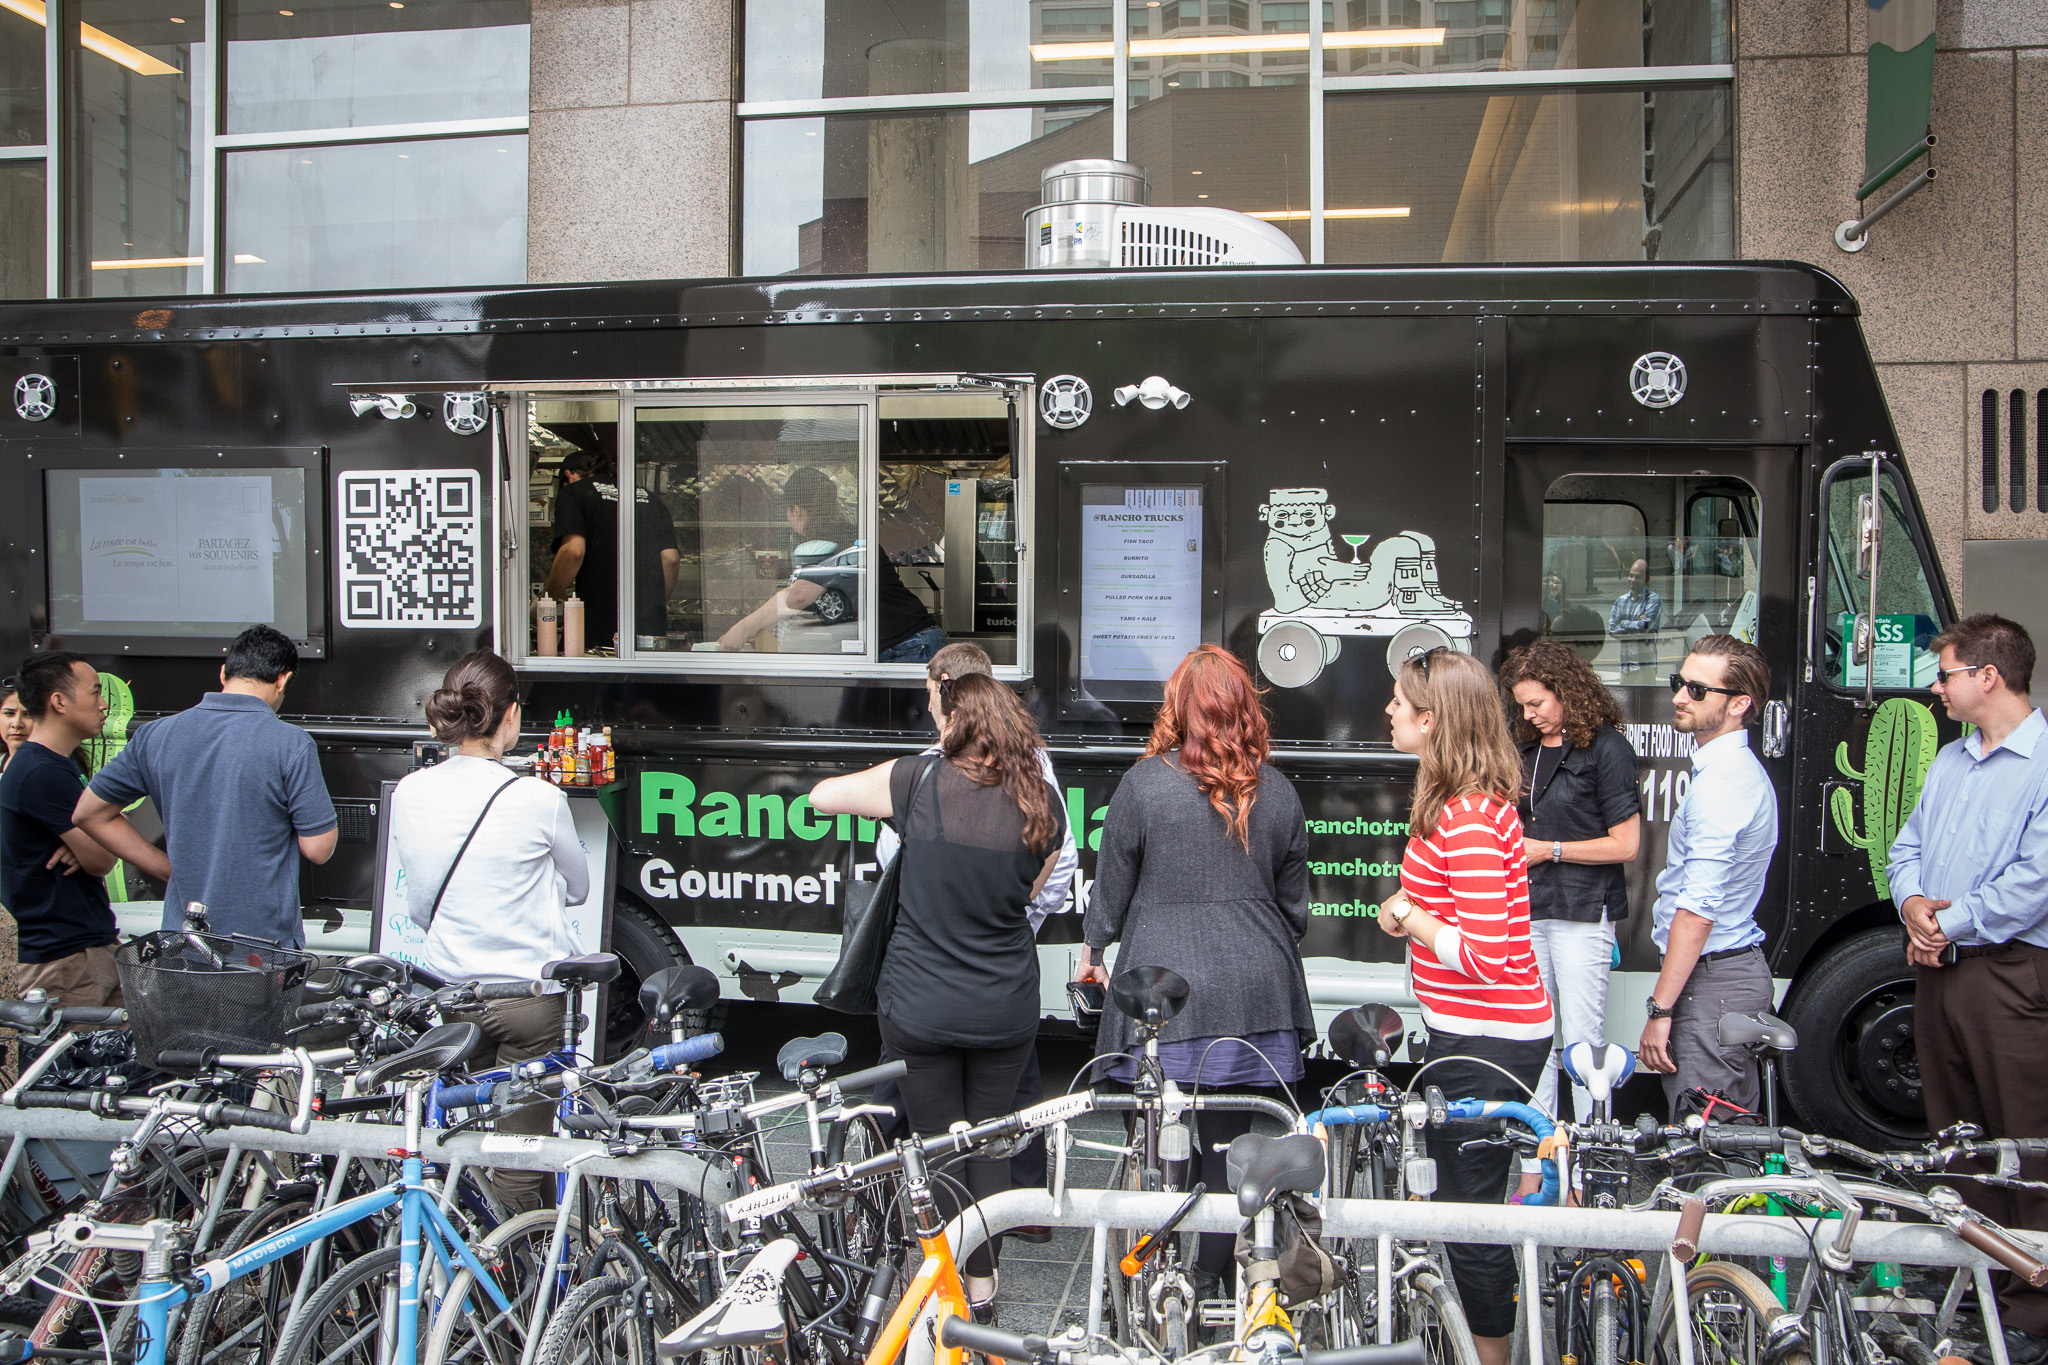 The Mexican Restaurant And Music Venue A College St Fixture For 16 Years Has Gone Curbside With Its Latest Venture Rancho Relaxo Gourmet Food Trucks